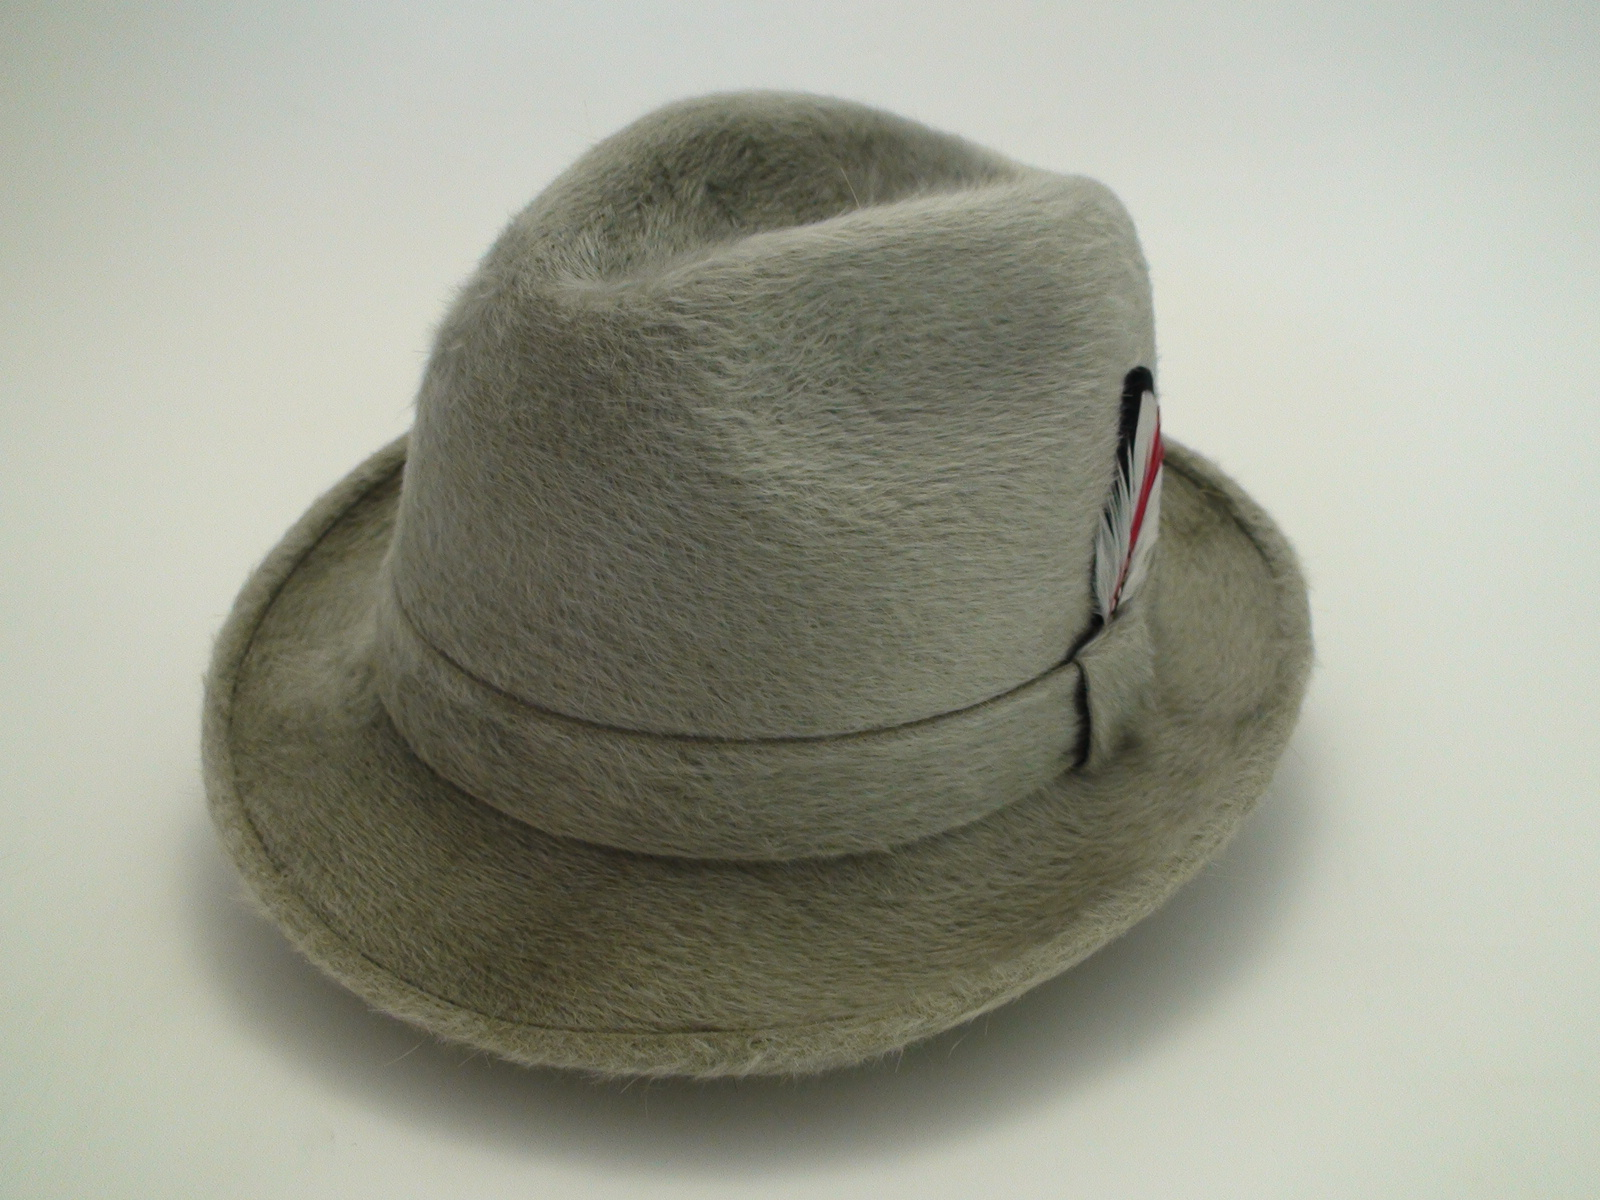 488ae2b0e0a Vintage Stetson Playboy Canadian Beaver DeLuxe Finish Silver Fedora Hat  Size 7 1 8″